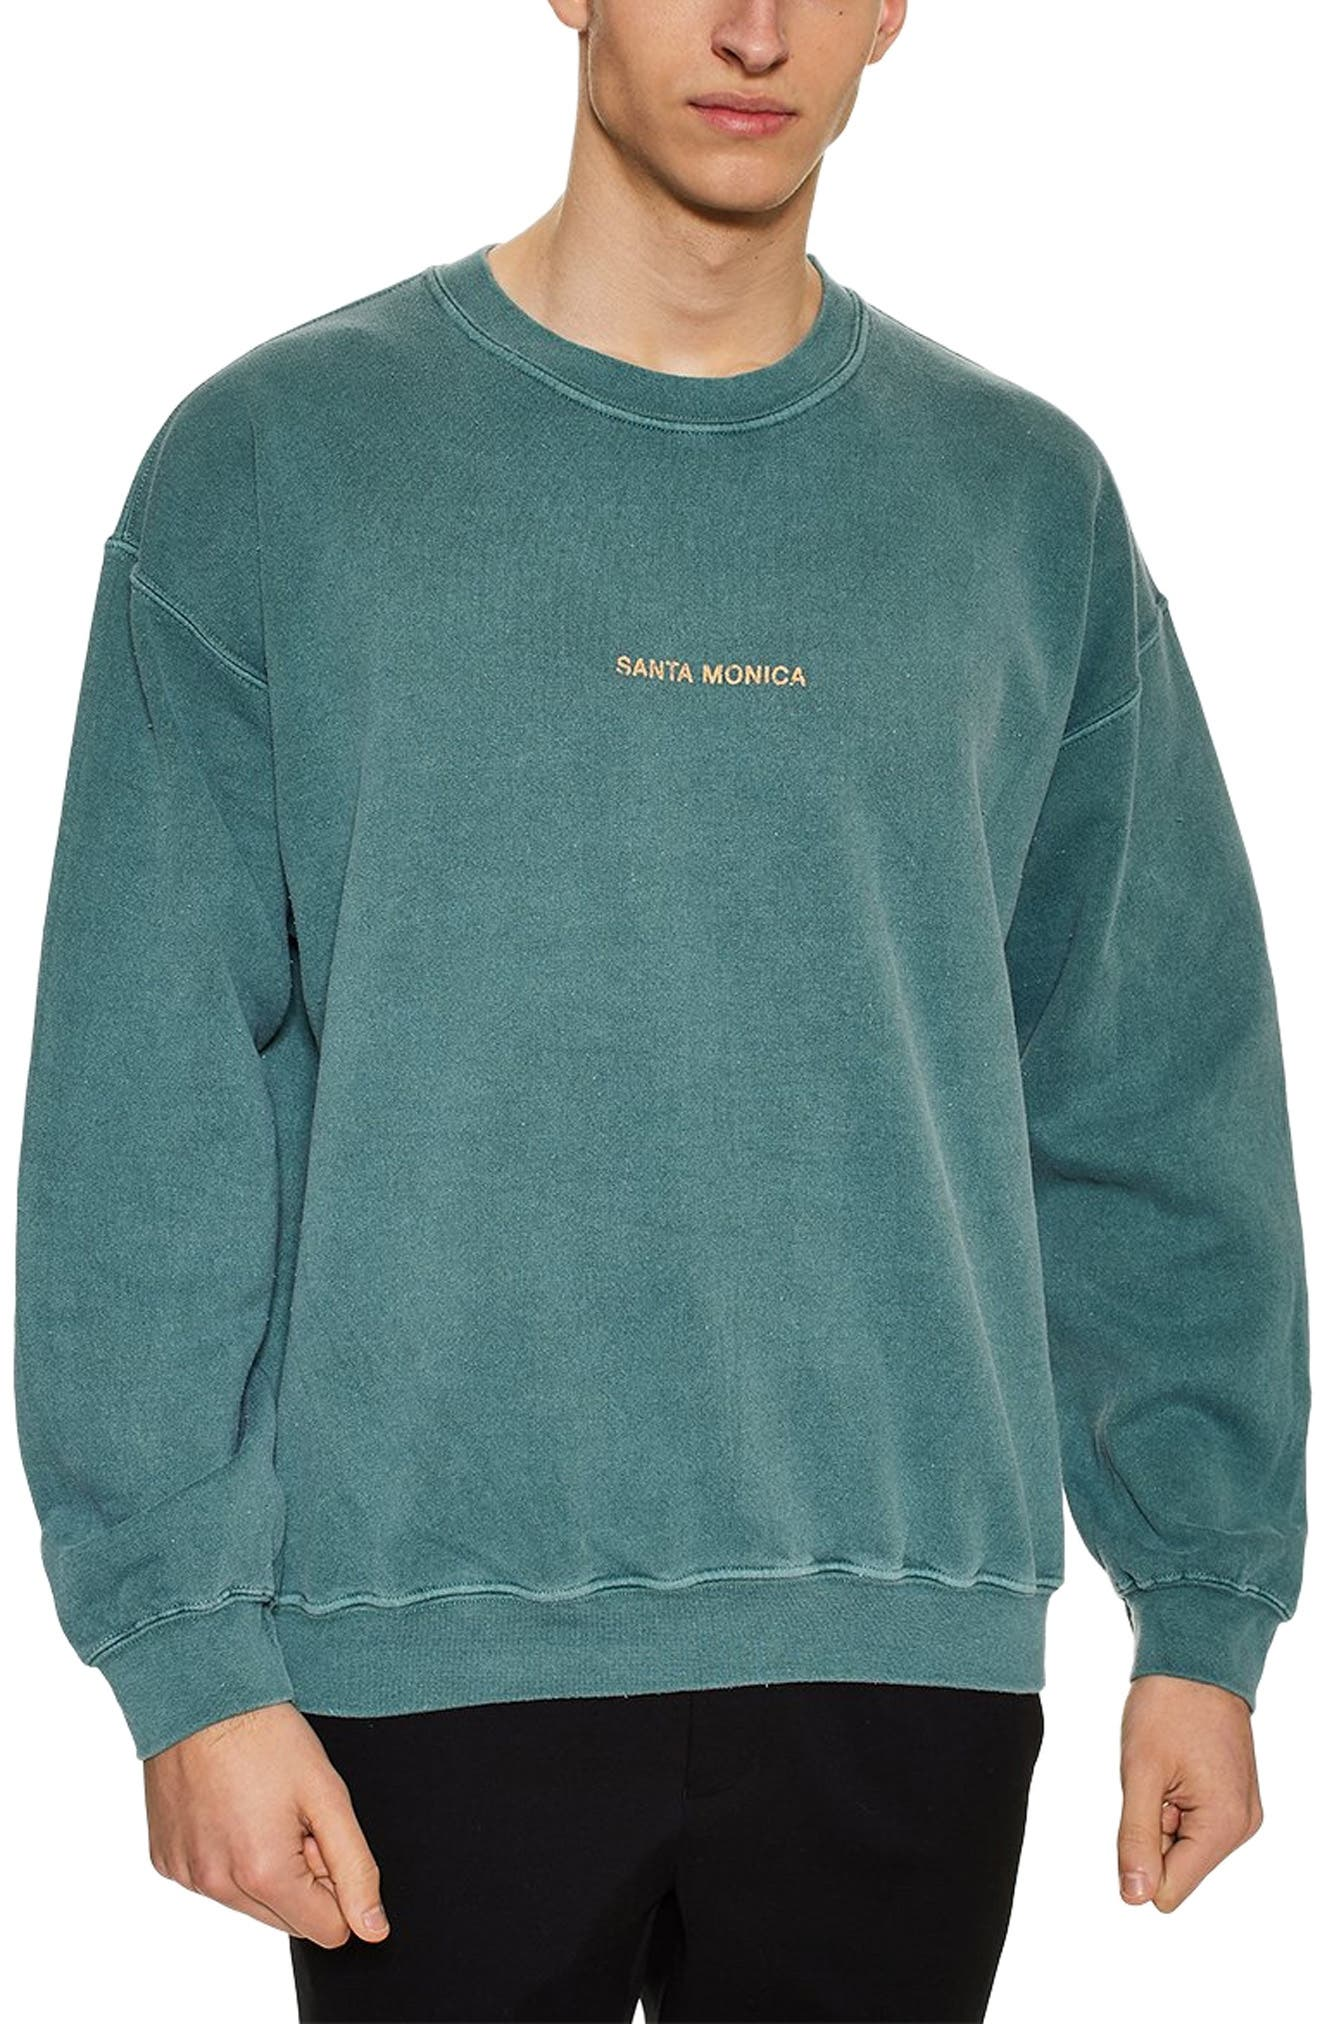 TOPMAN, Santa Monica Oversize Sweatshirt, Main thumbnail 1, color, GREEN